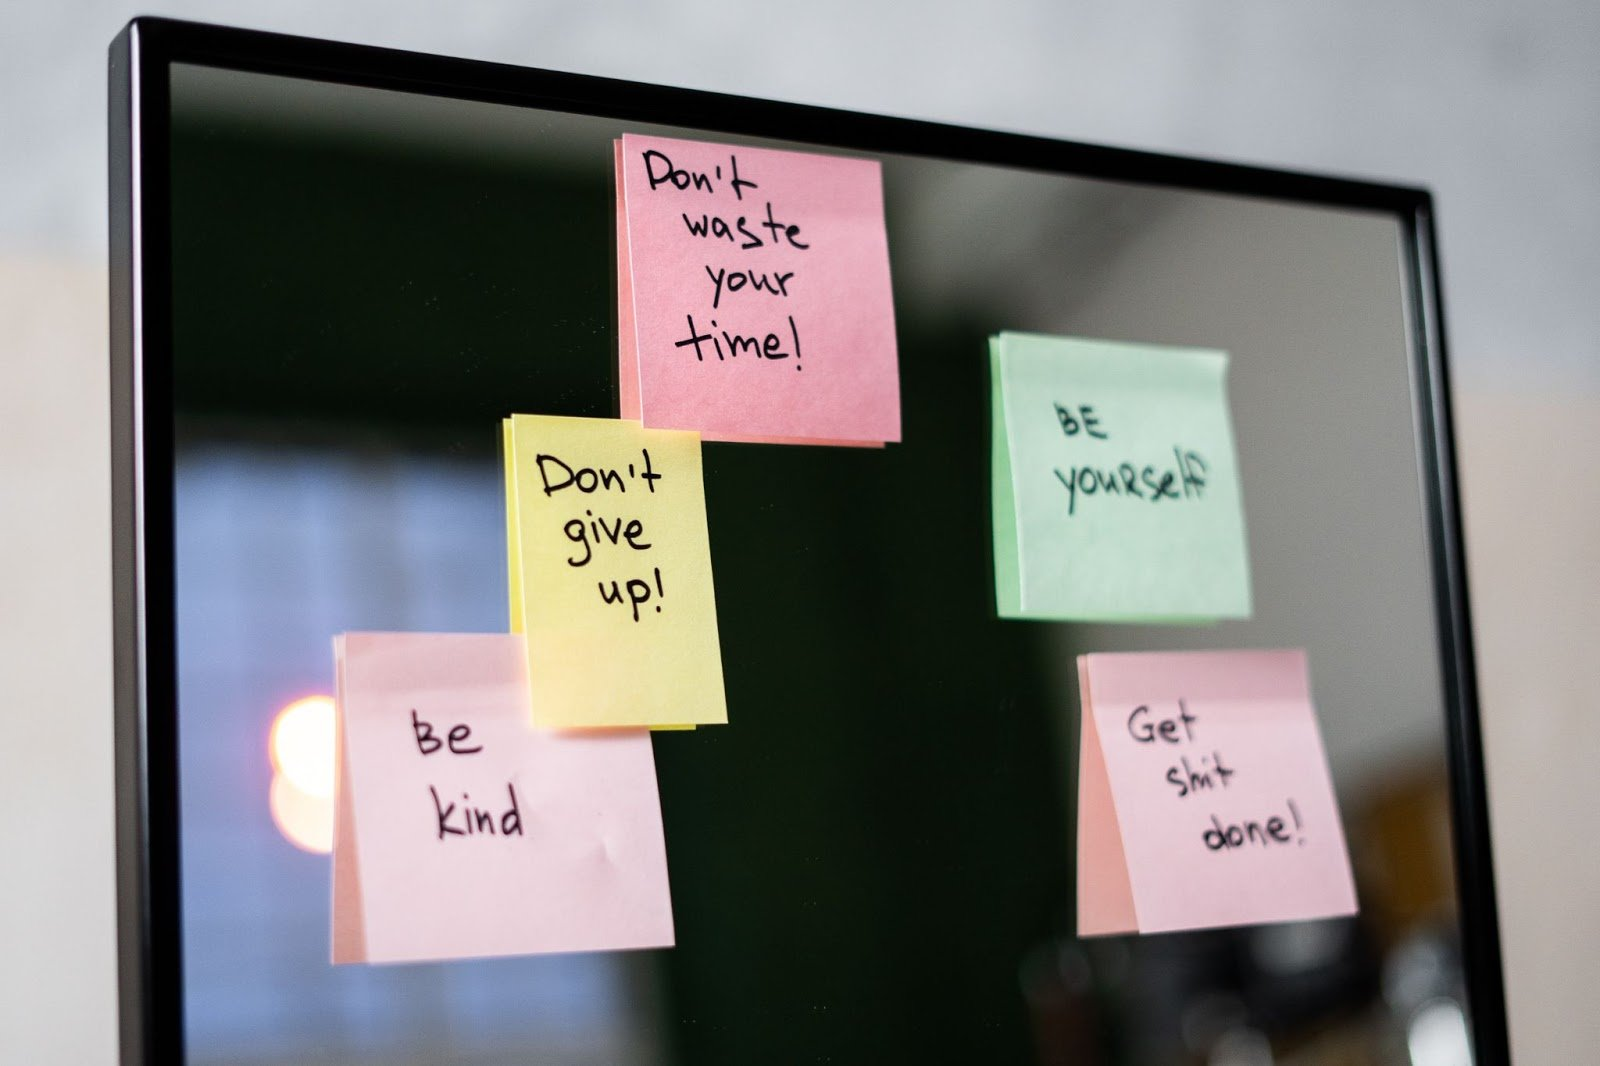 Positive post its on a screen